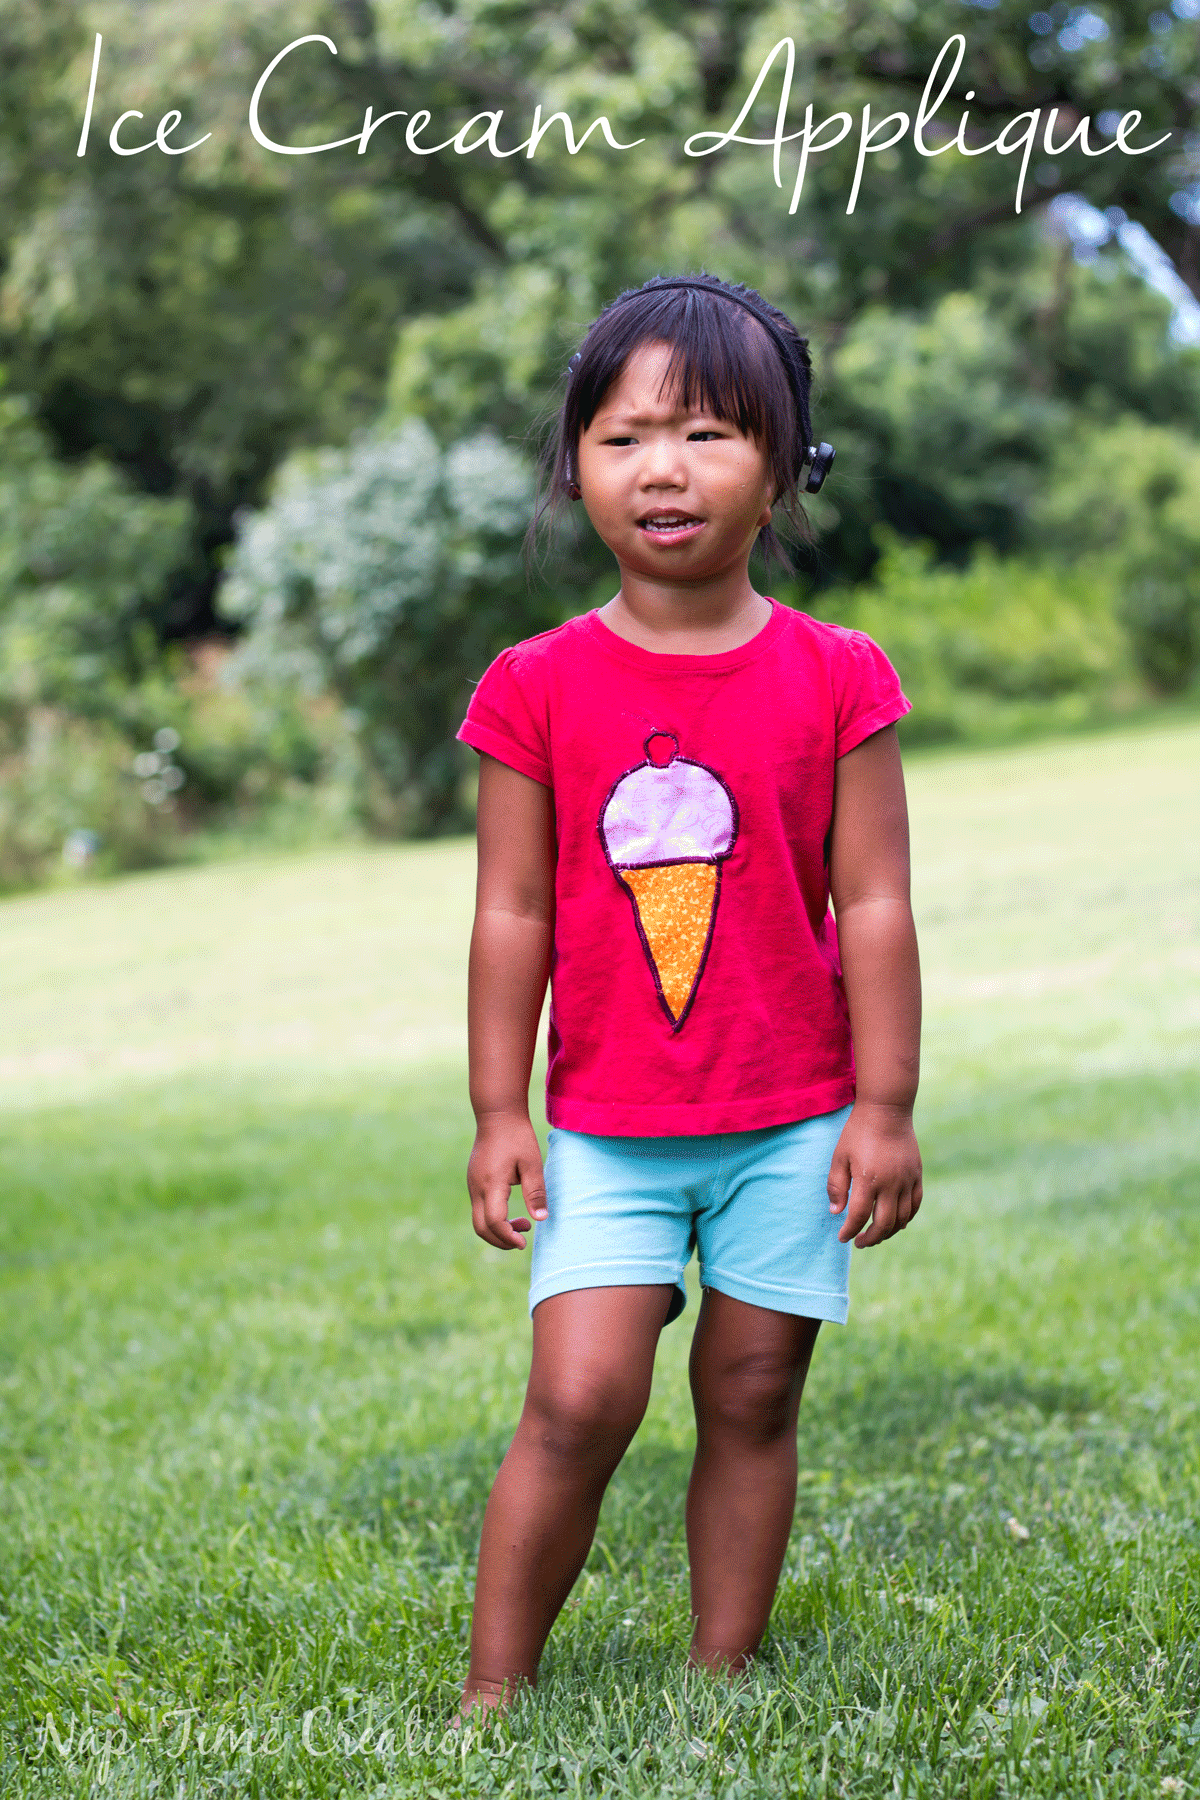 Ice-cream-applique-template-from-Nap-Time-Creations